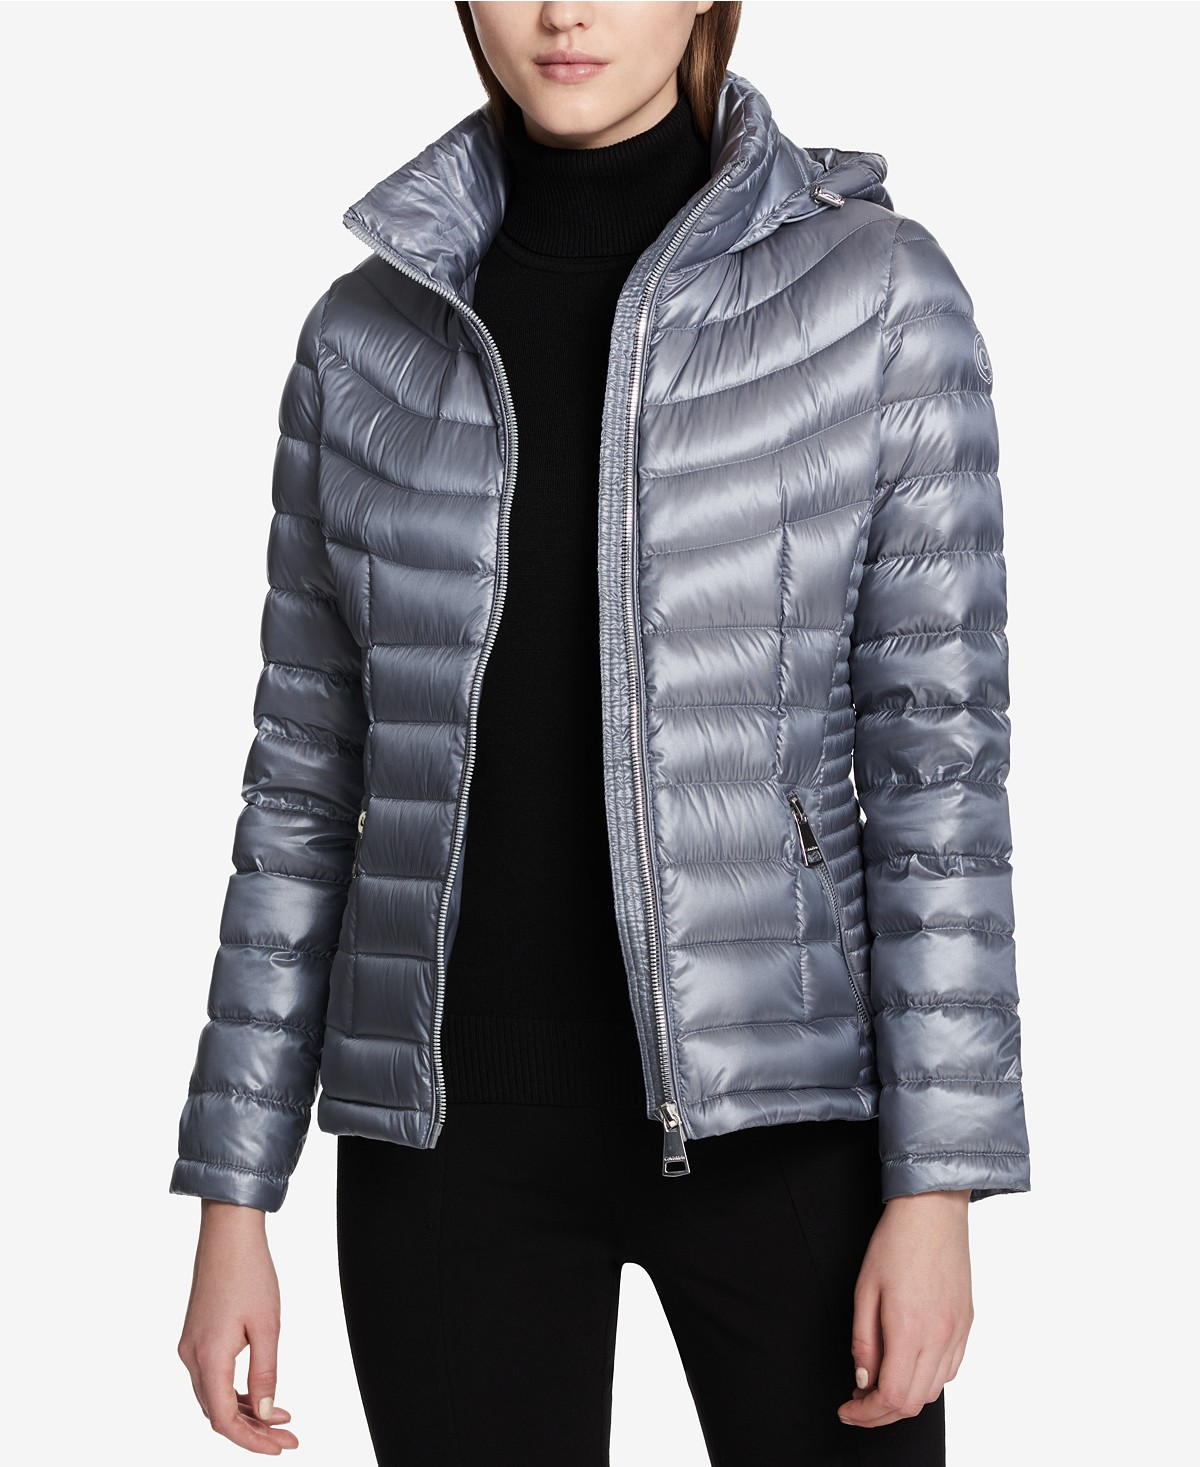 MACYS HUGE CALVIN KLEIN APPAREL SALE! PRICES STARTING AT $6.63!